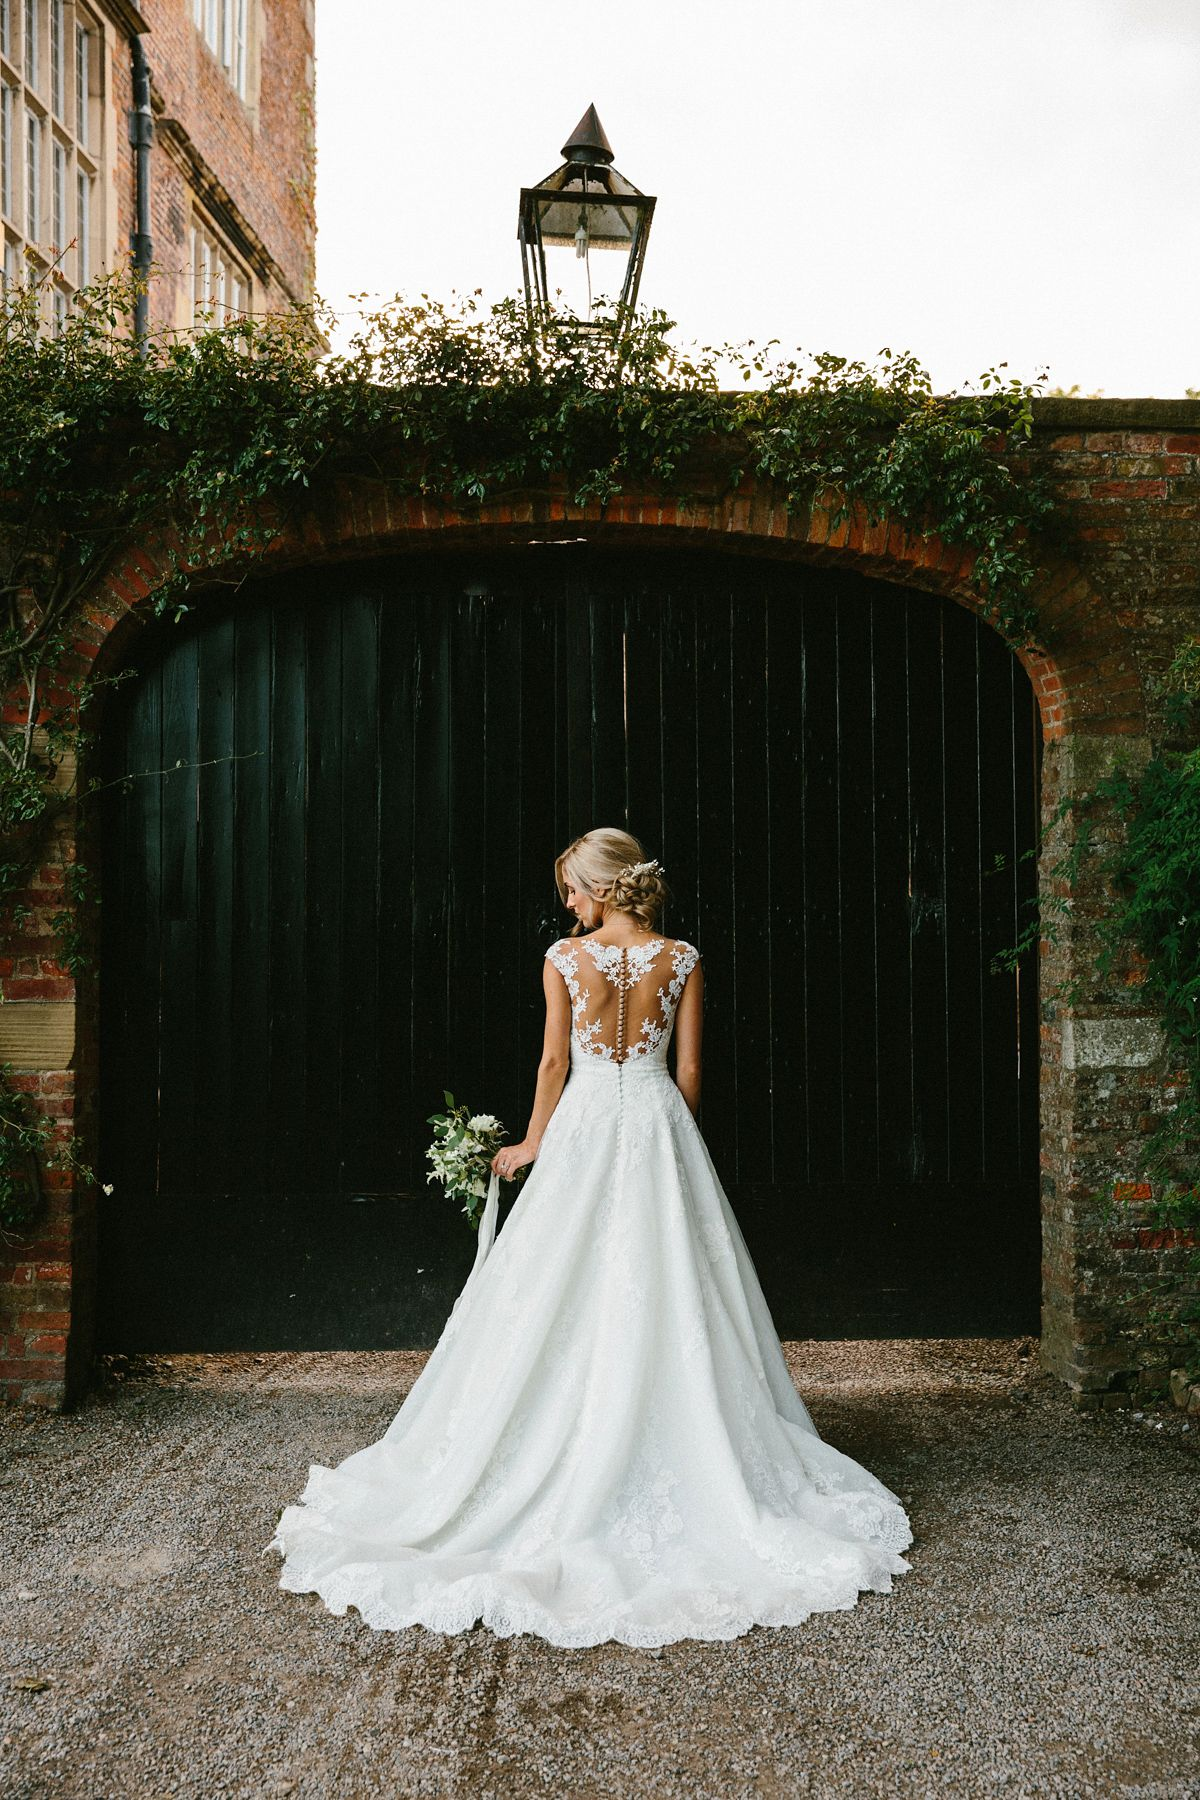 budget wedding venues north yorkshire%0A A Pronovias Gown for a Rustic Italian Wedding in North Yorkshire